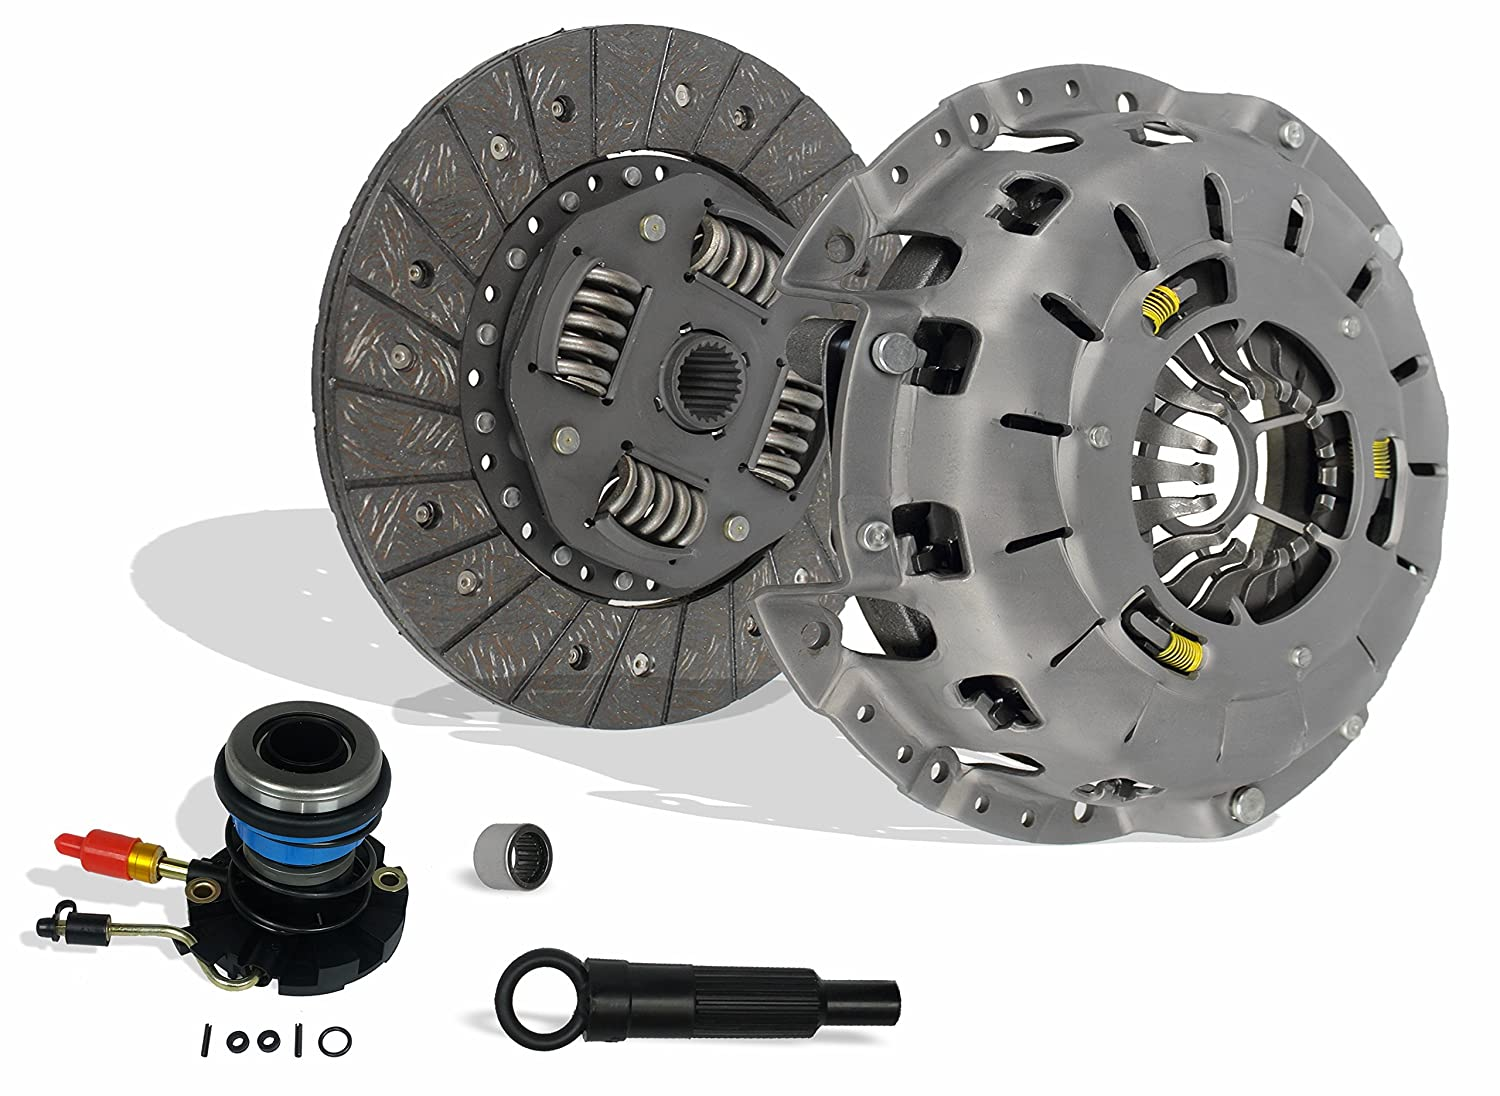 Amazon.com: Clutch And Slave Kit Works With Ford Ranger Mazda B2300 B2500  B3000 Bse Xl Xlt Limited Sport Stx Ds 1995-2011 2.3L L4 Gas Dohc 2.5L Gas  Sohc L4 ...